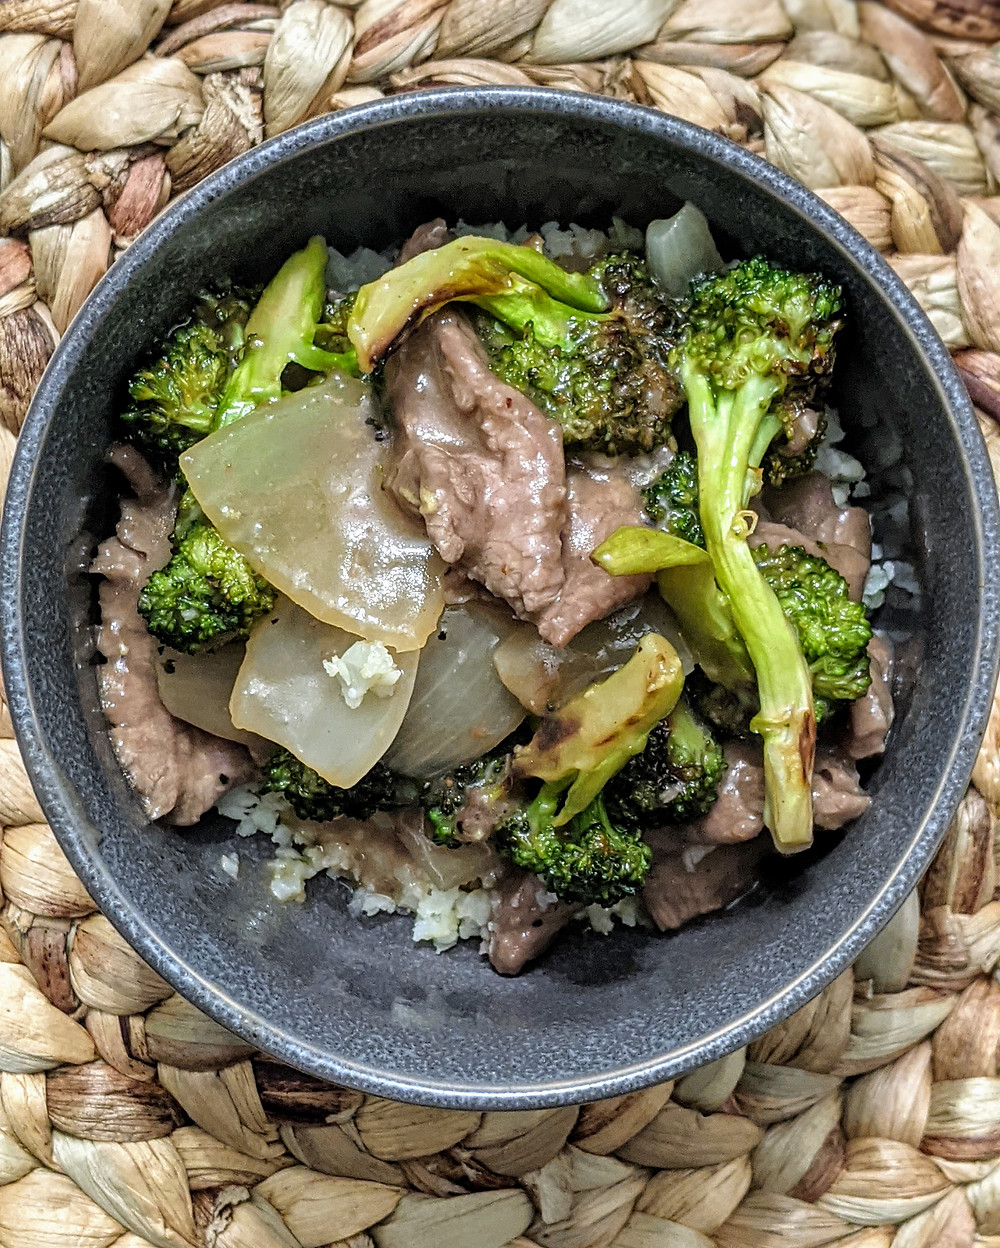 The Sunday Cookbook Soy-Free Beef and Broccoli, featuring TRUBEEF - joseph centineo - food allergy recipes